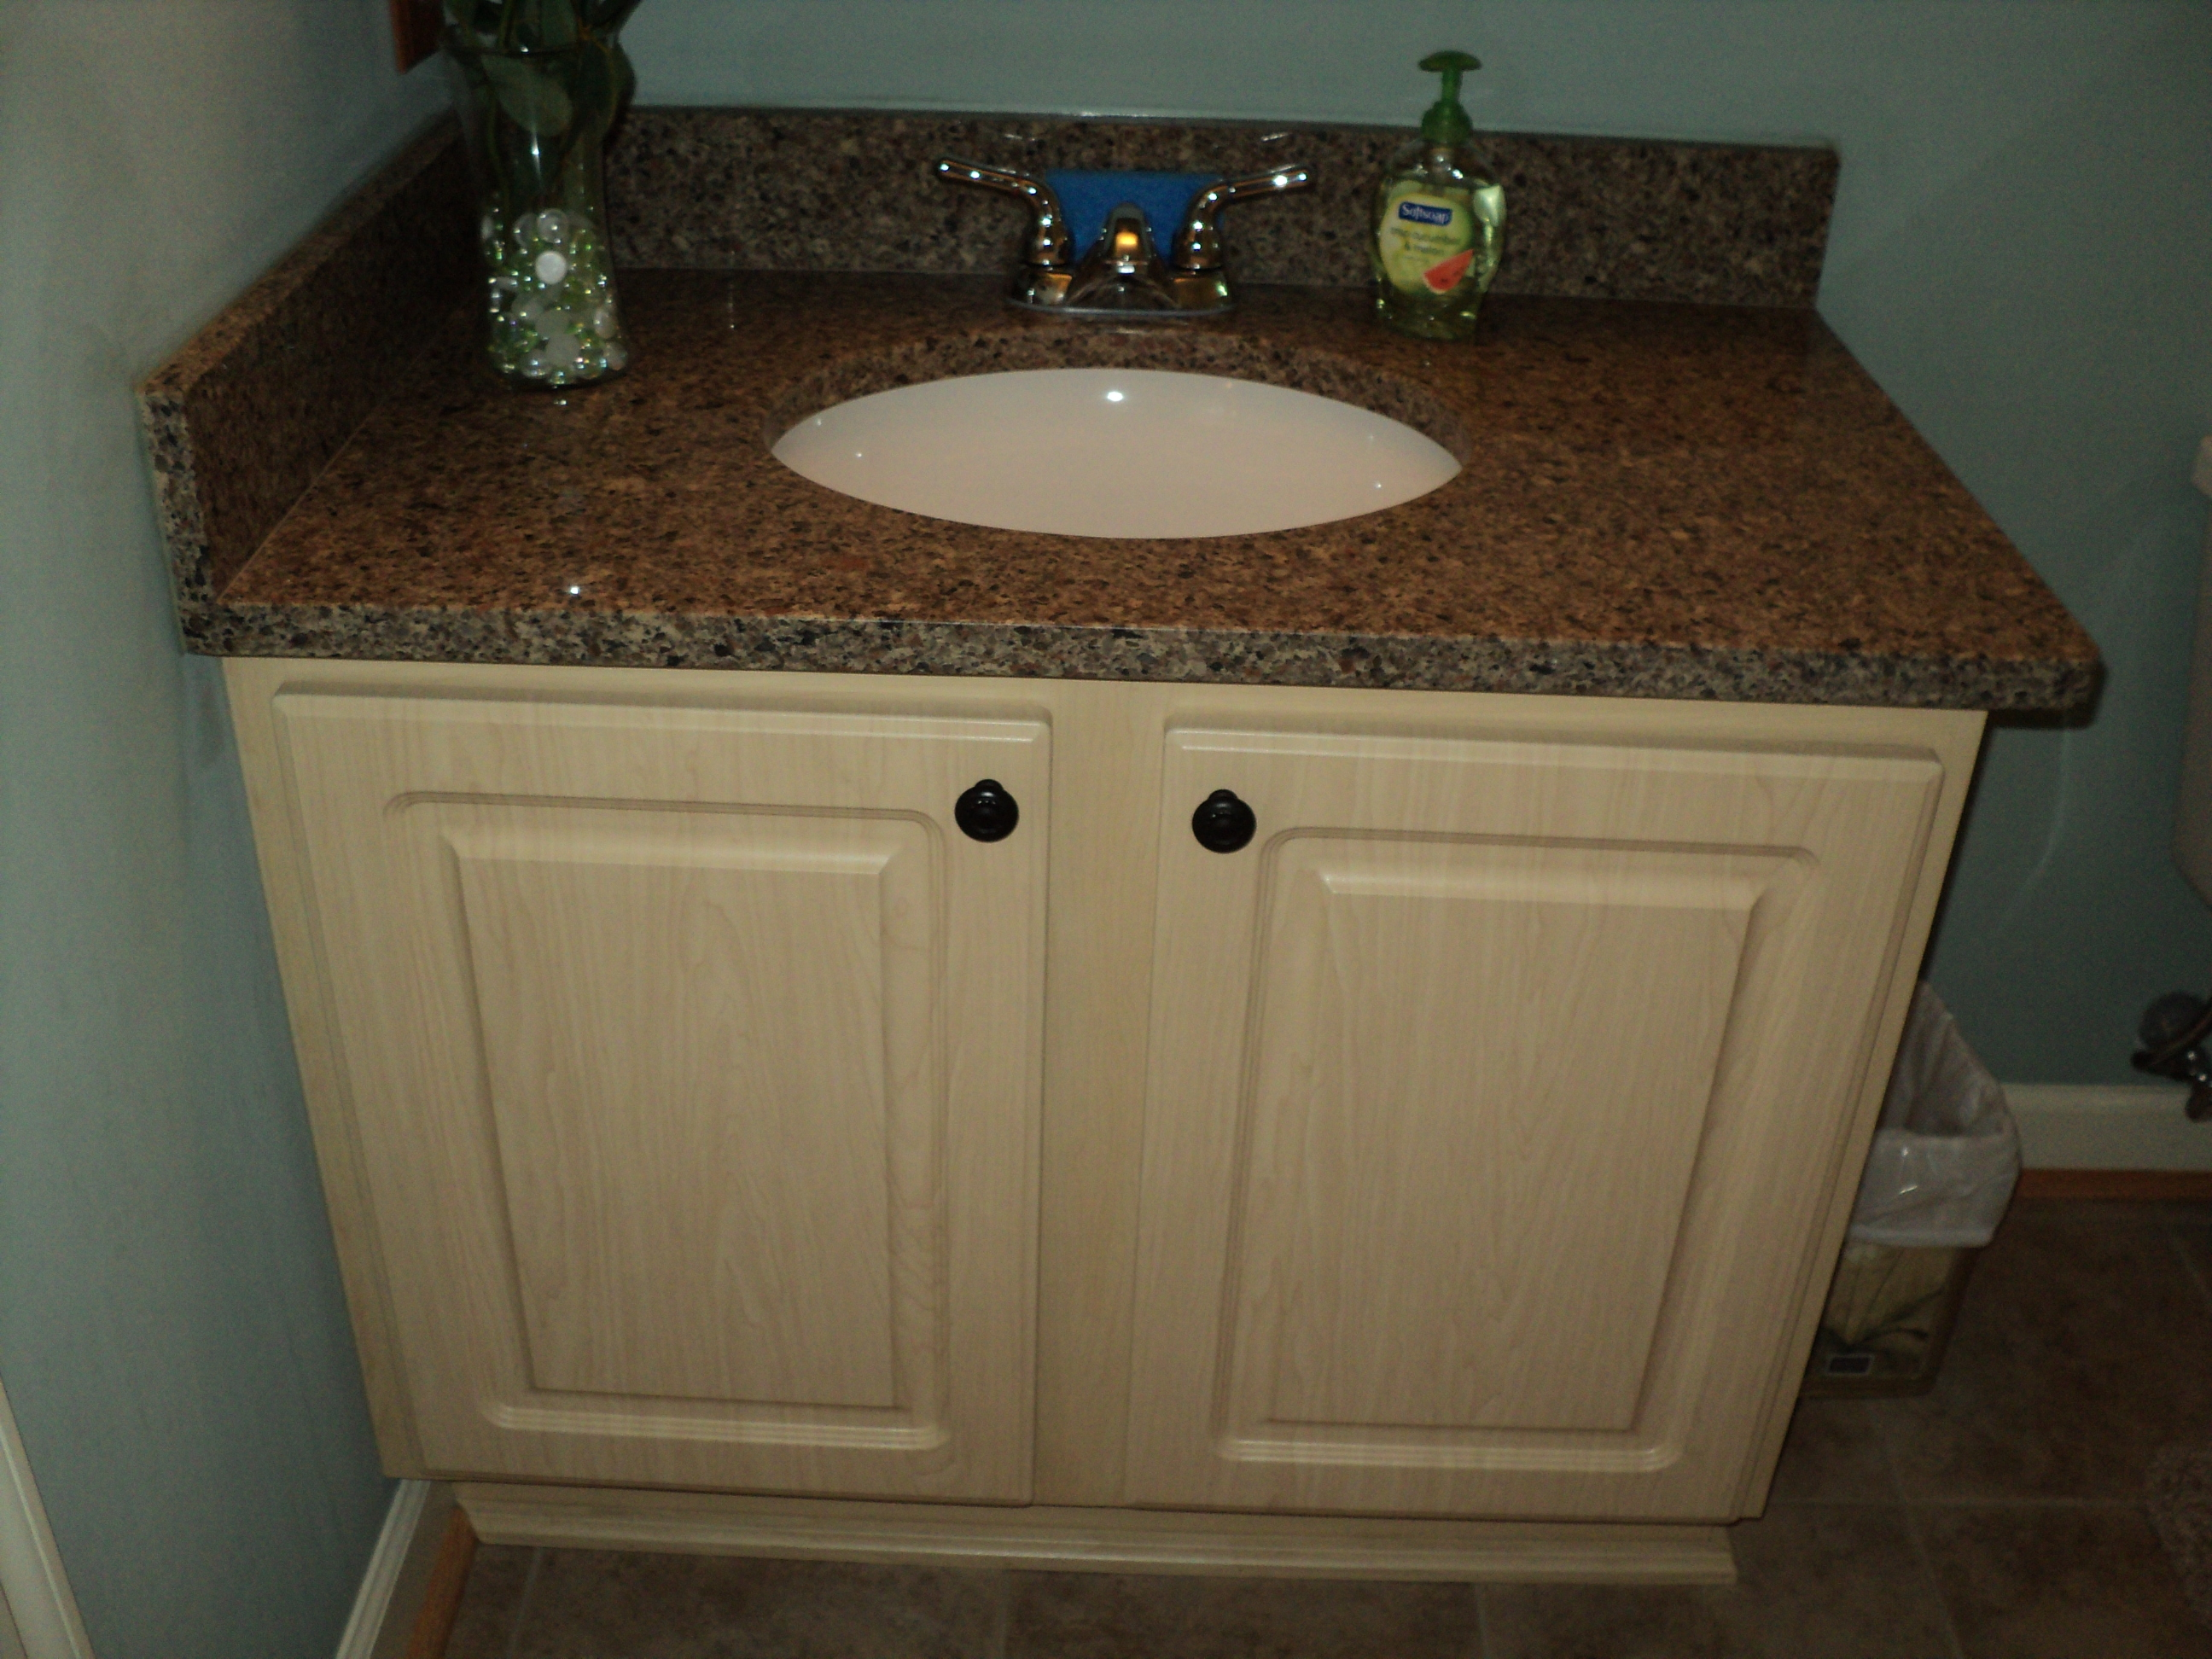 Can i reface my bathroom vanity thecabinetremodeler for Bathroom cabinets refacing